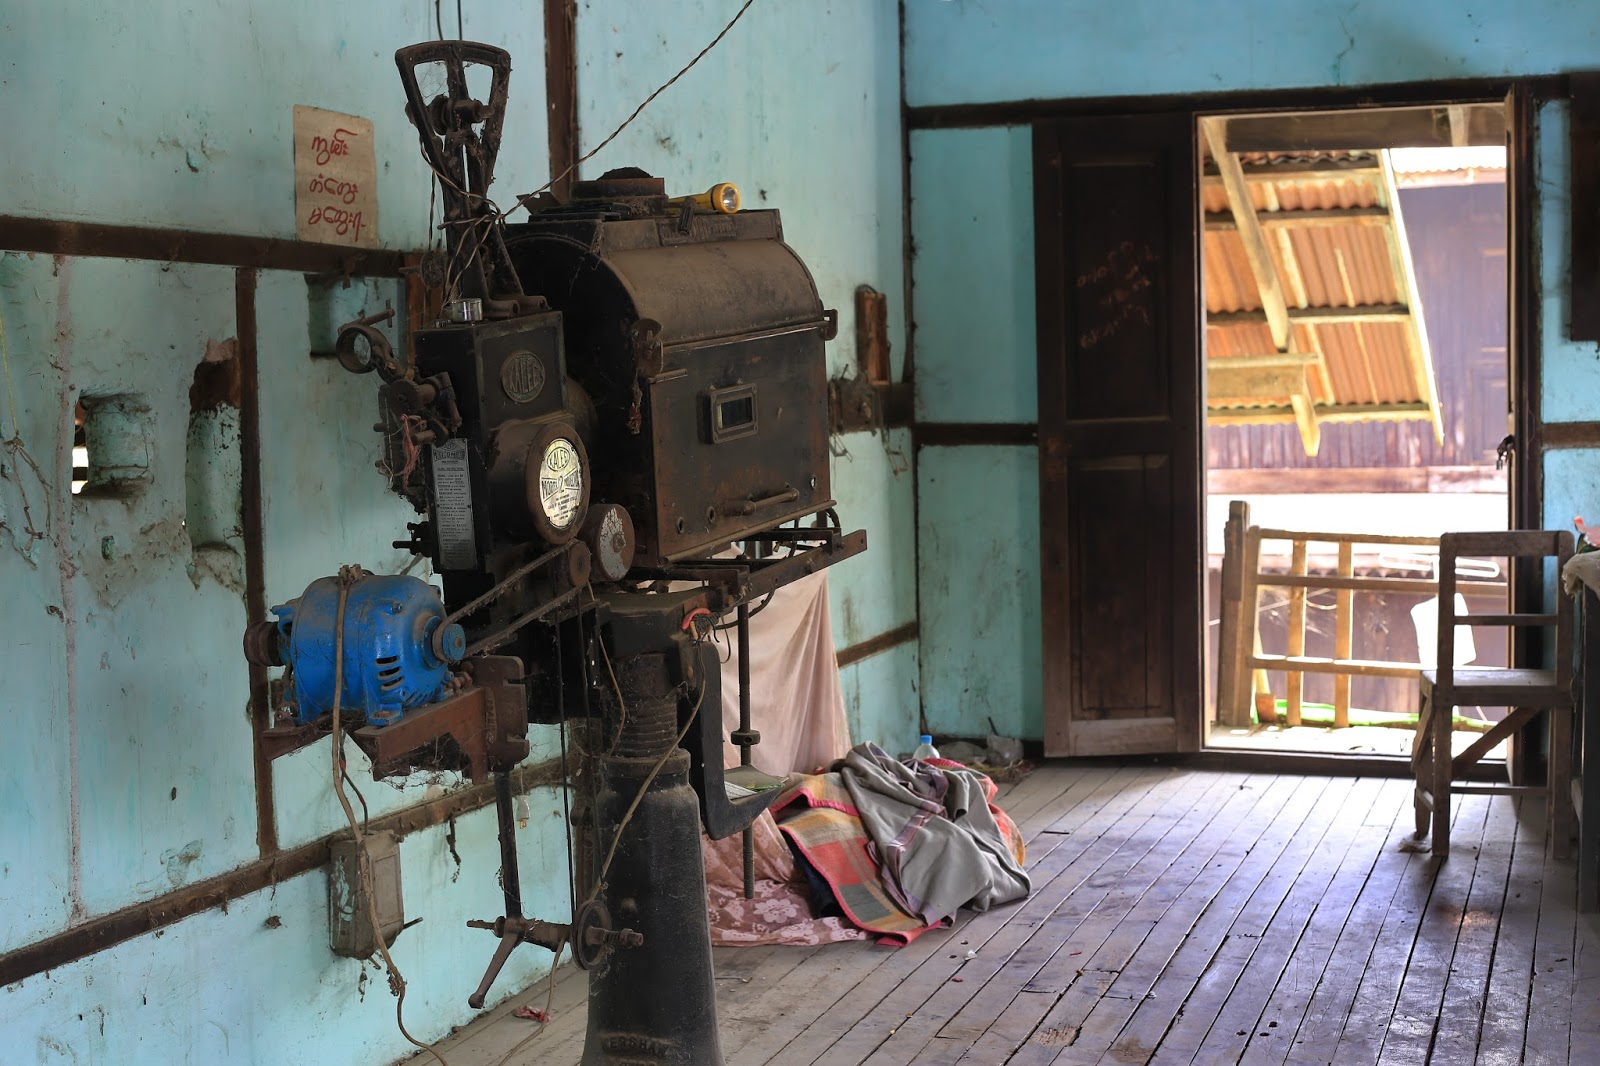 The Southeast Asia Movie Theater Project